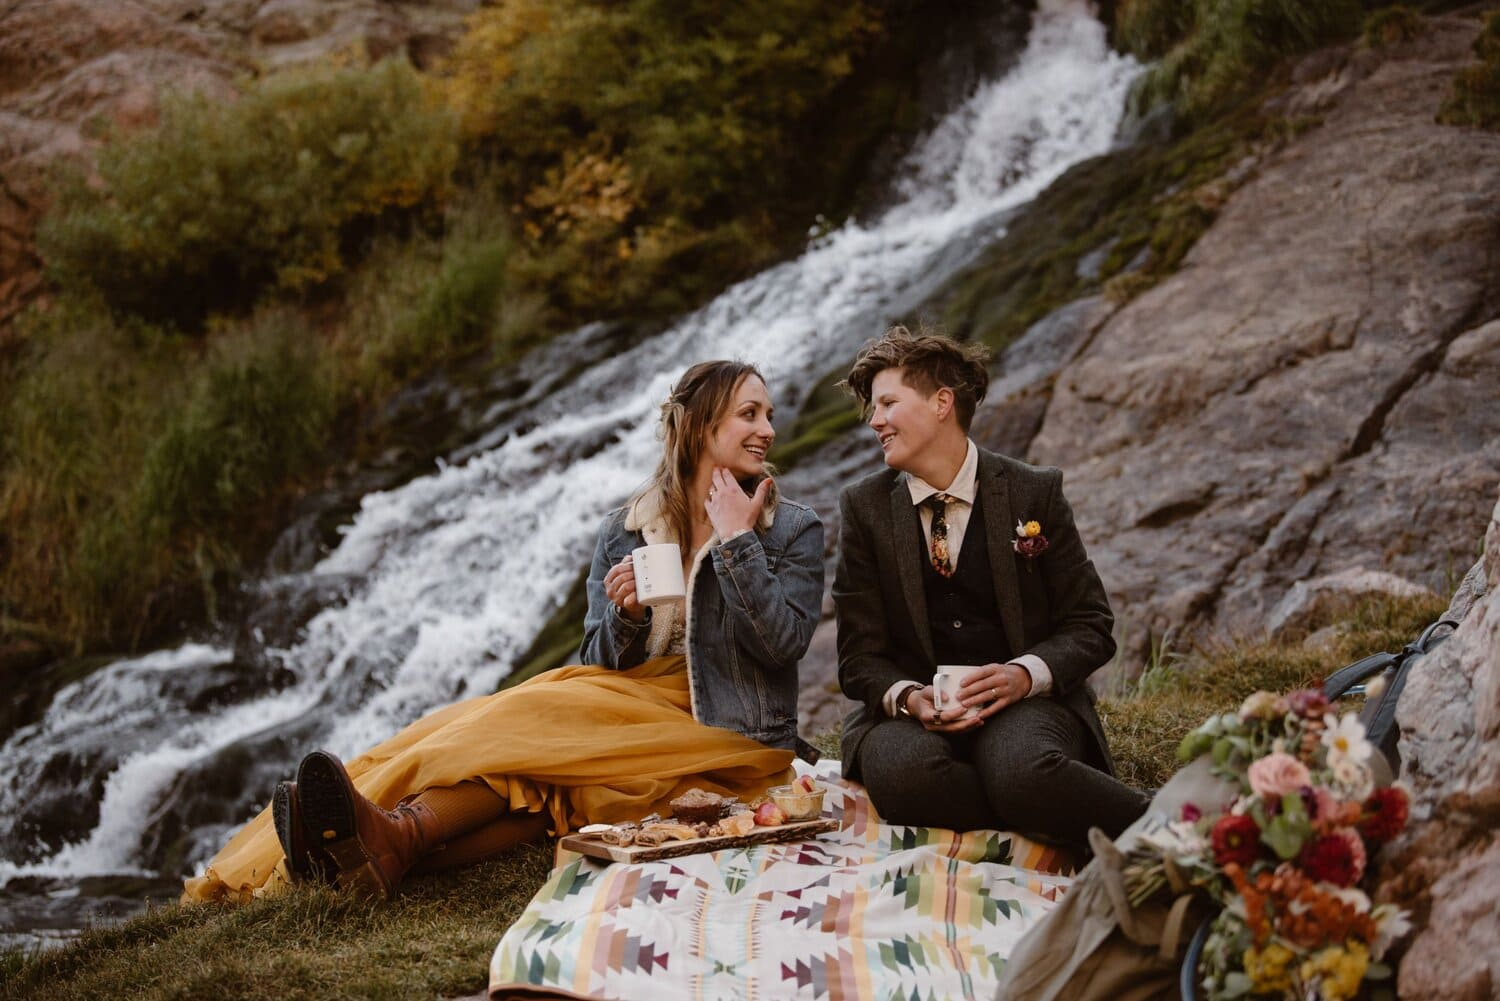 Two brides smile at each other while having a picnic near the waterfall on their elopement day.